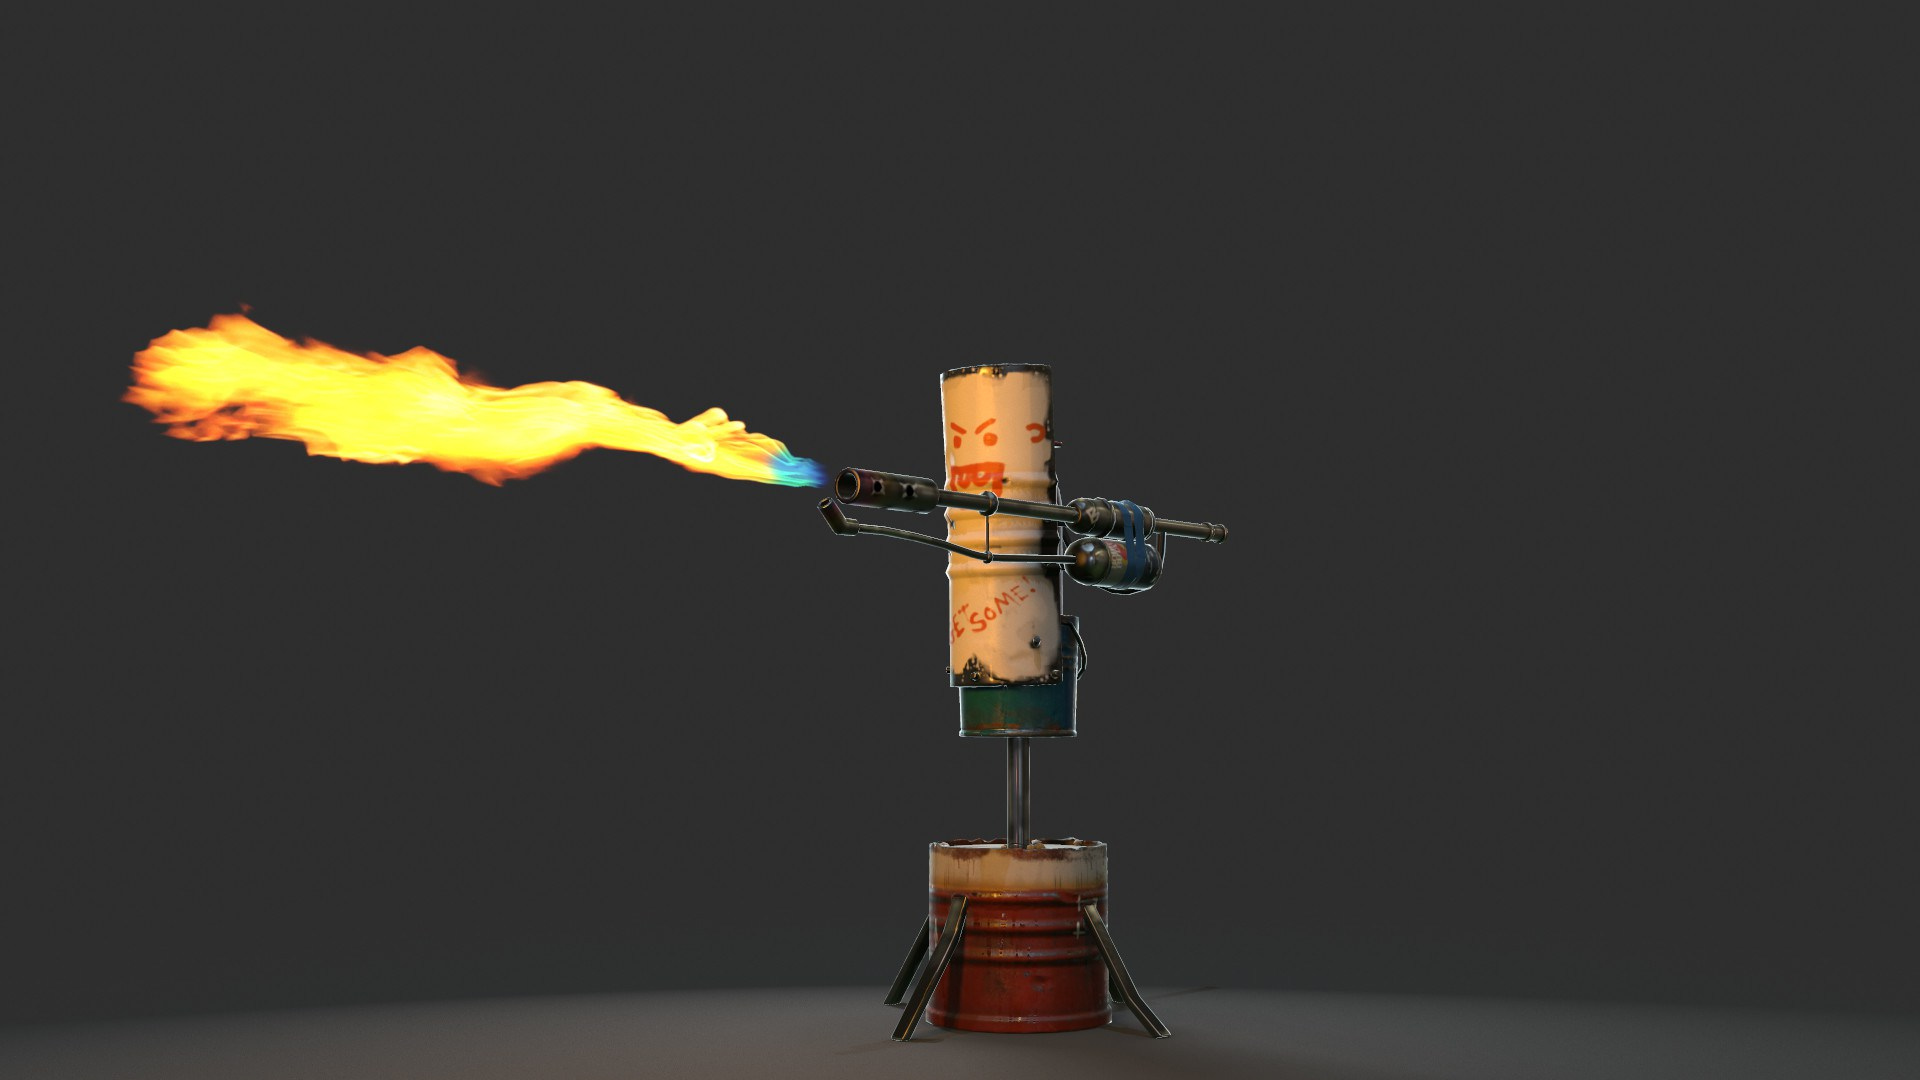 thomas-butters-flameturret2